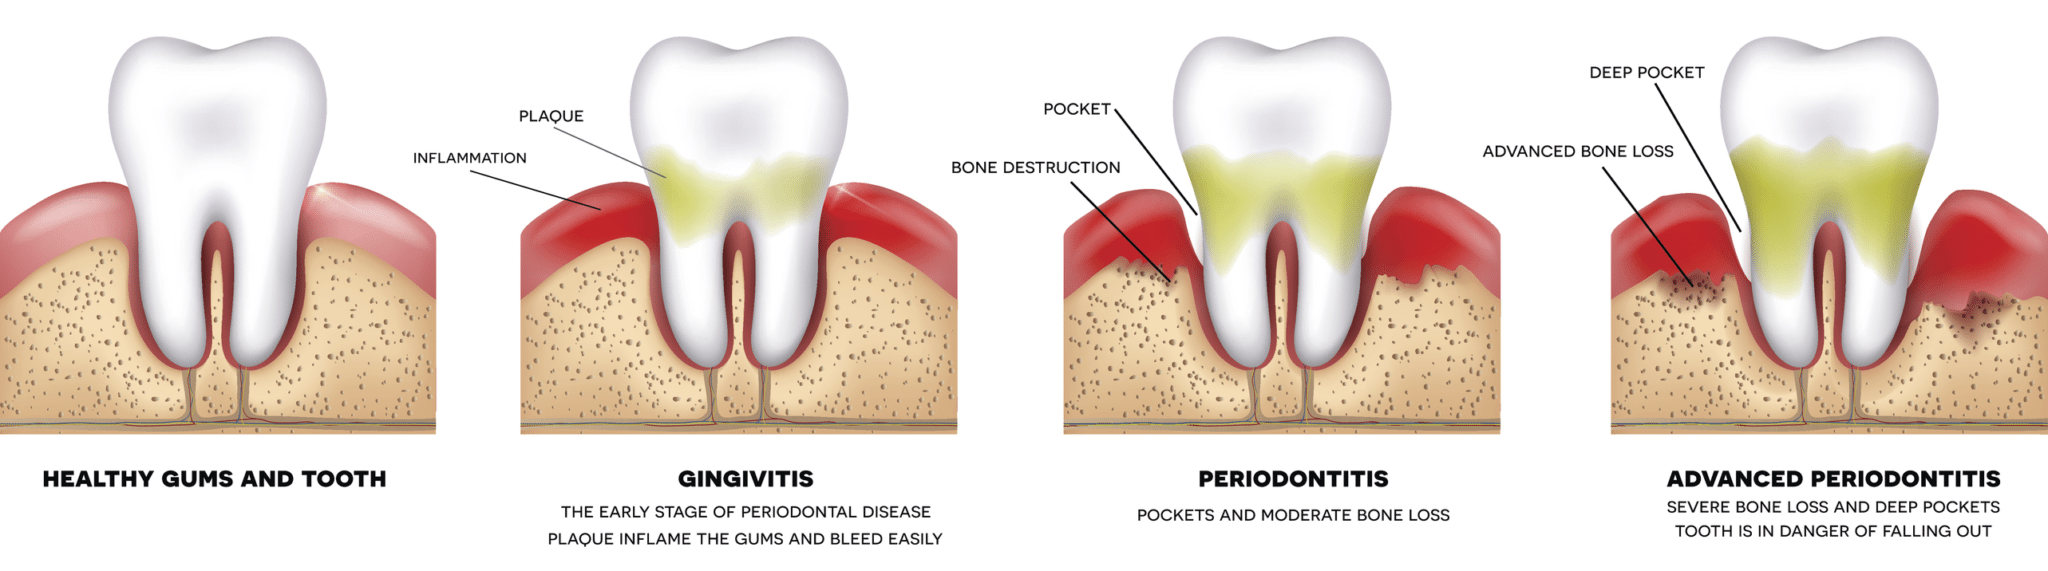 gum-disease-progression manassas smiles va